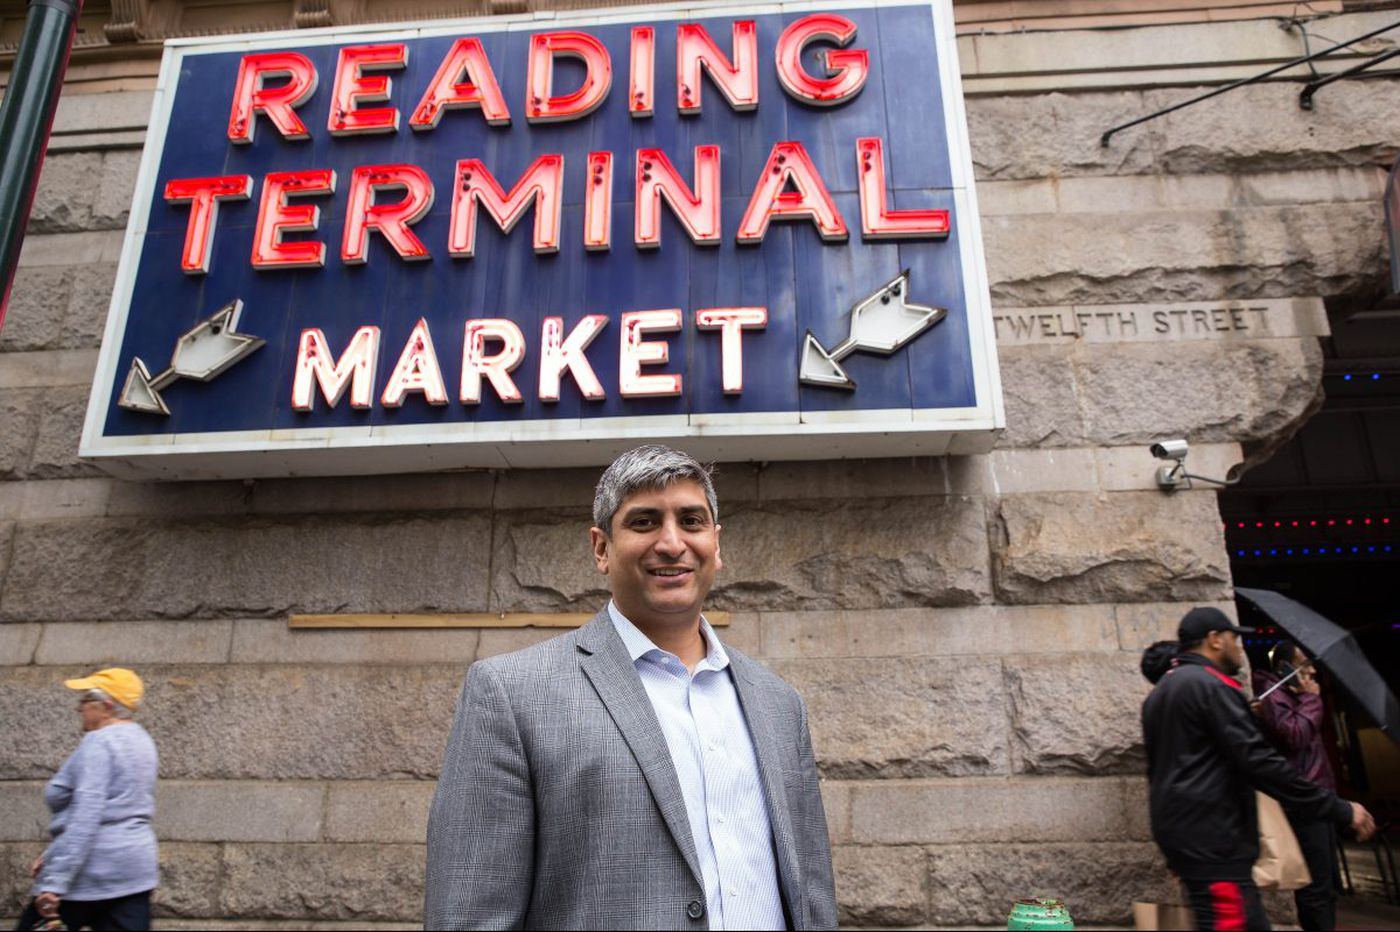 Reading Terminal manager Anuj Gupta taking the market into the future